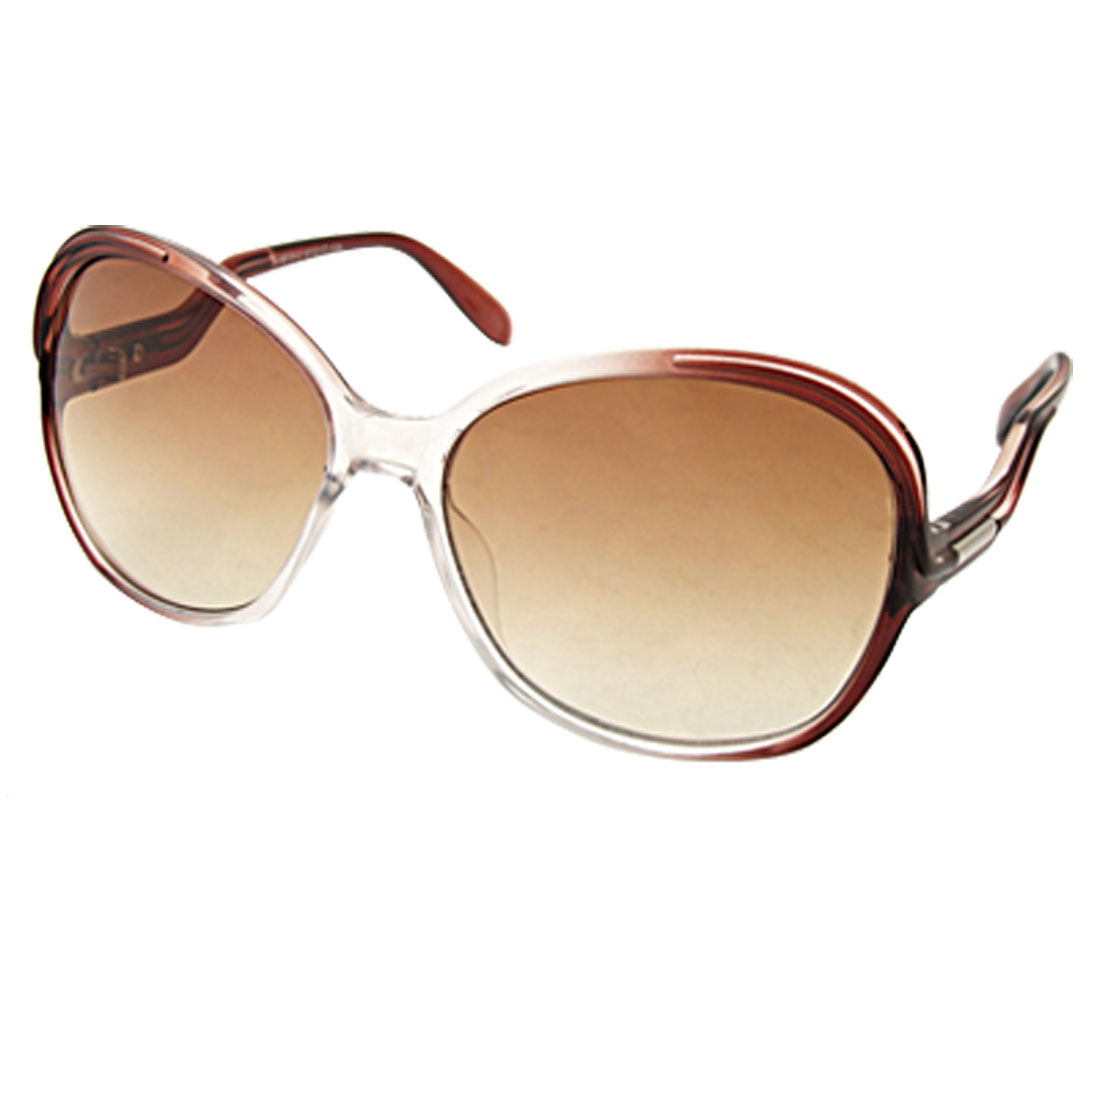 Plastic Women's Sunglasses Fashion Eyewear with Amber Lens